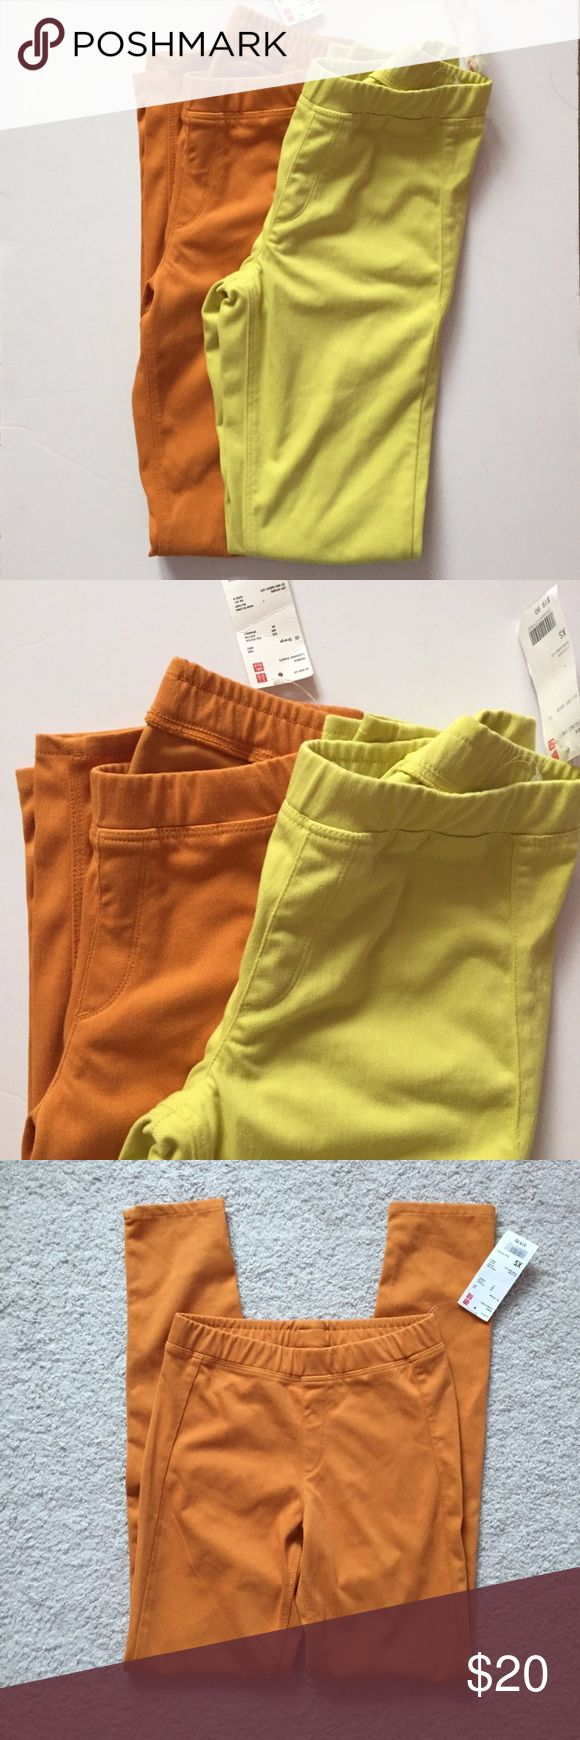 🎀2 NWT Uniqlo Leggings🎀 Brand new with tag. Never worn. Bright colors for the Spring and Summer. Price is for both. Uniqlo Pants Leggings